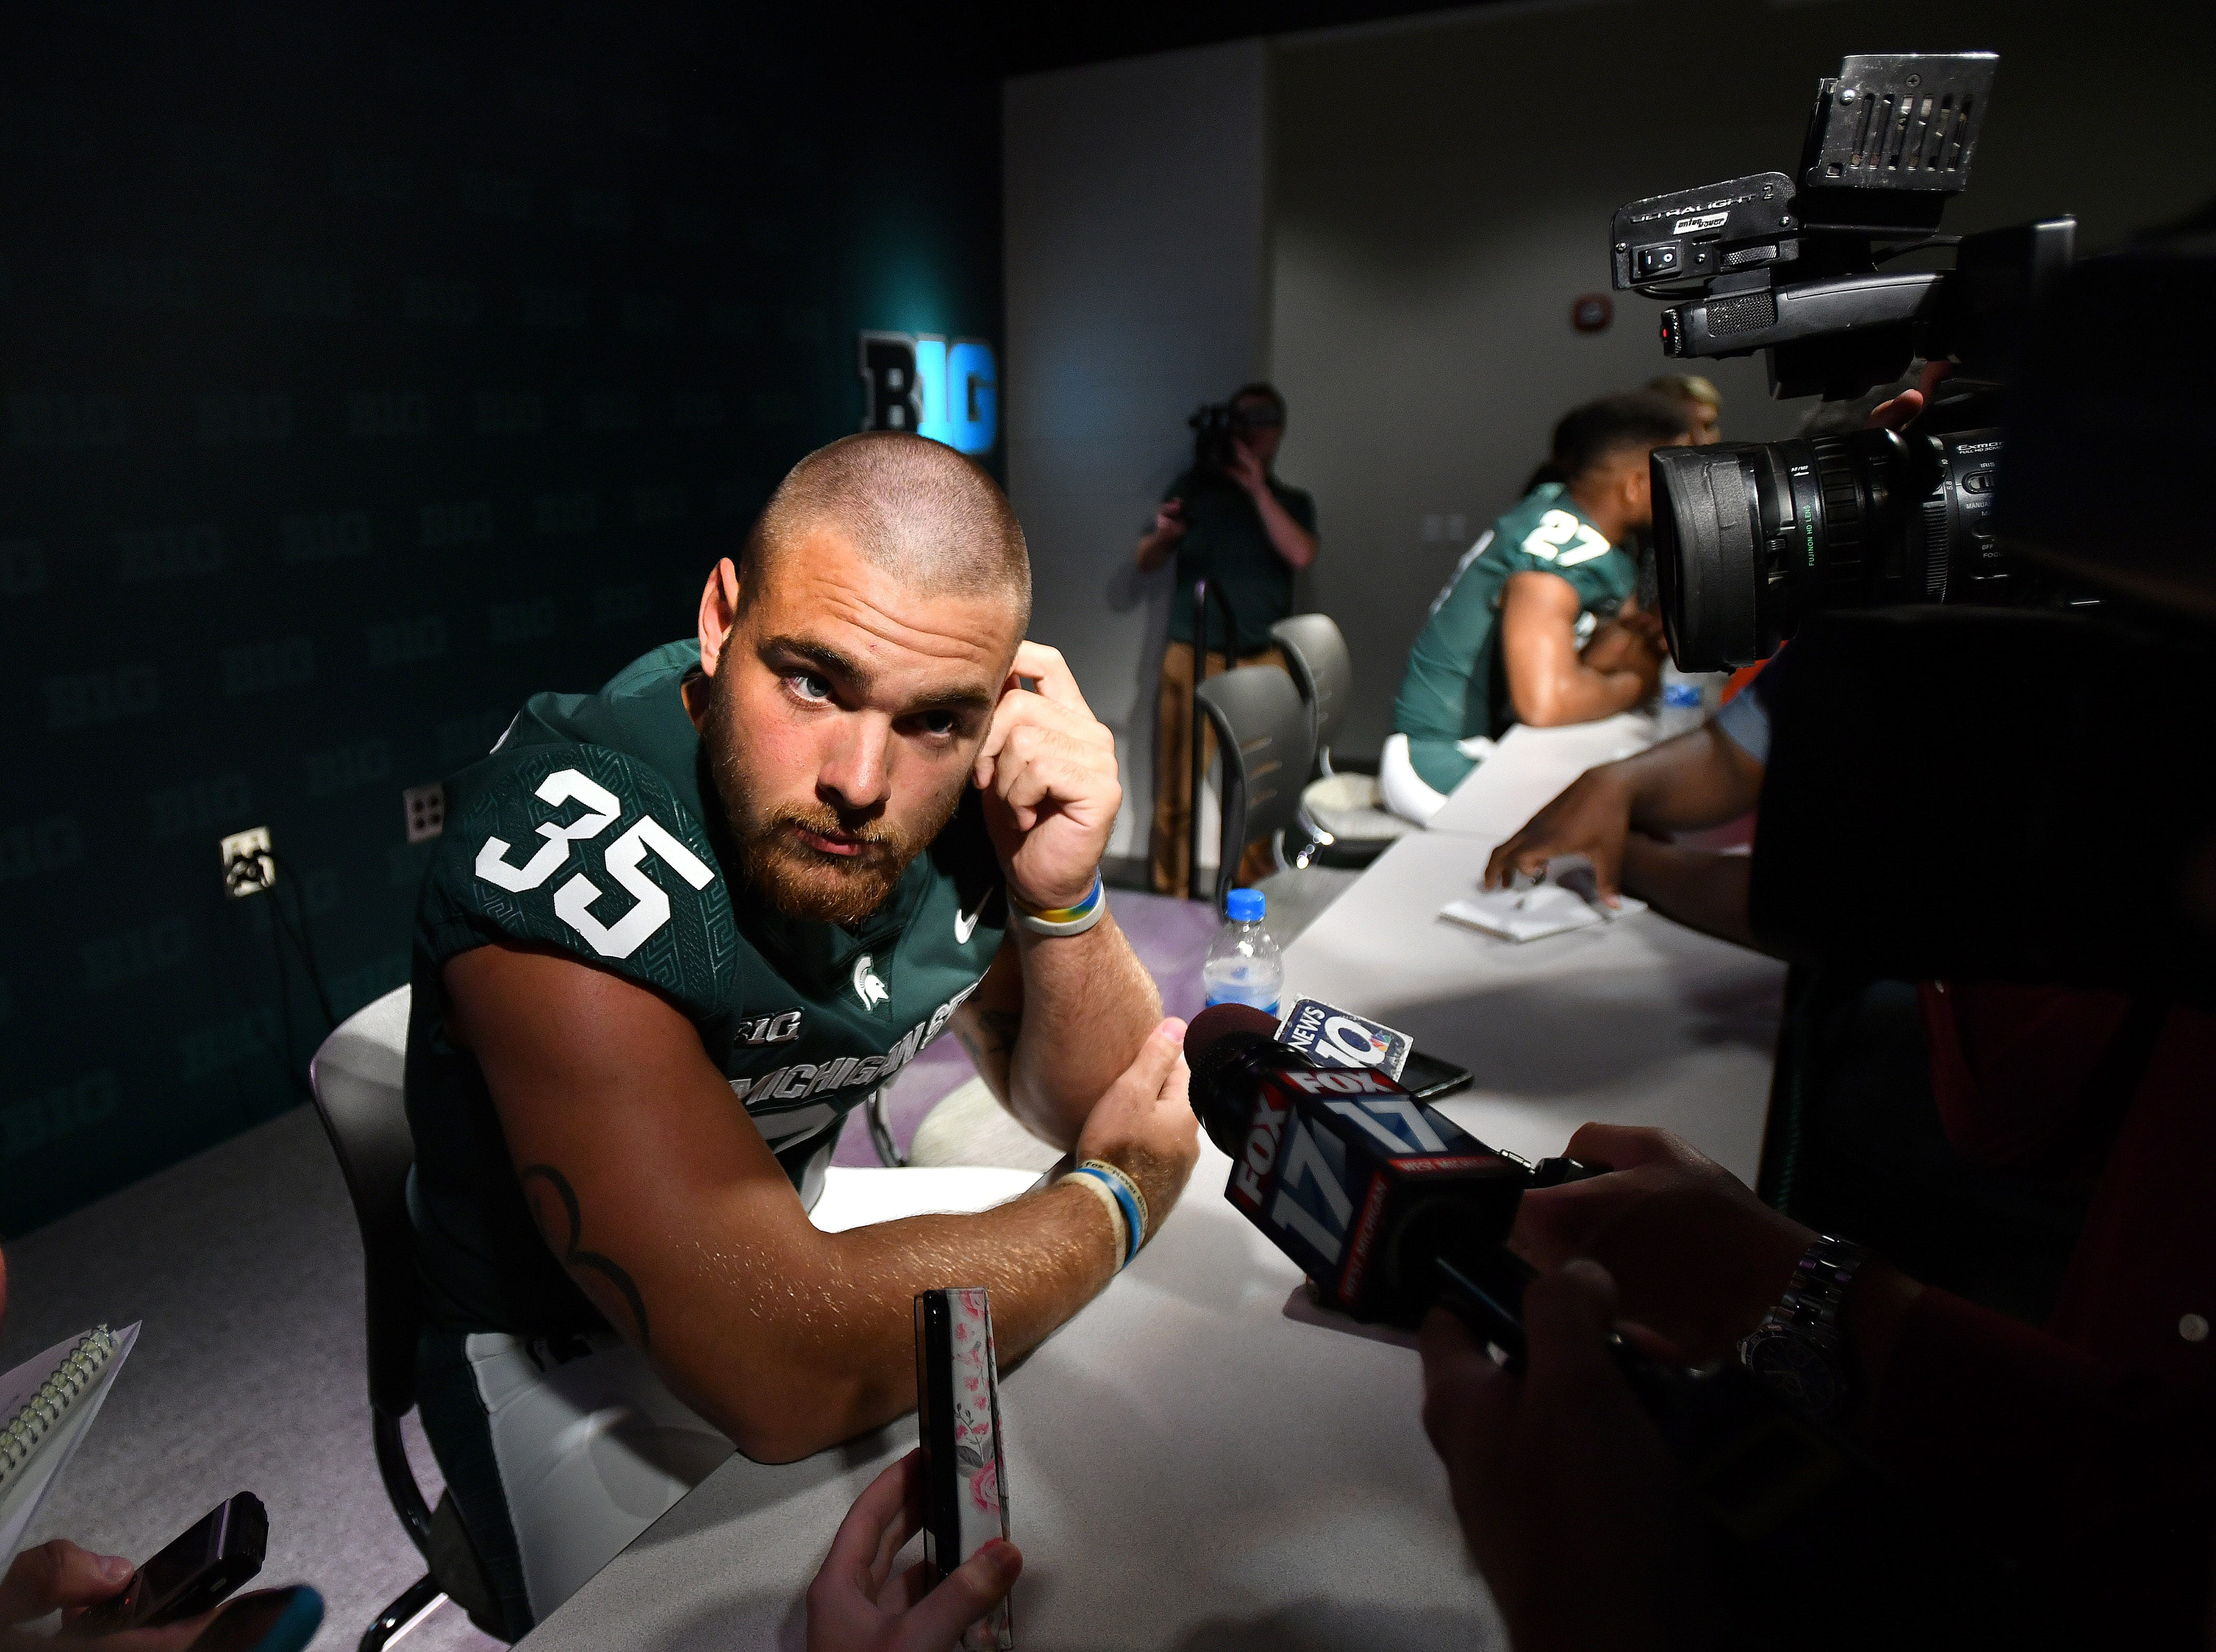 Michigan State linebacker Joe Bachie struggles to hear a question posed by a reporter amid the din of media day.